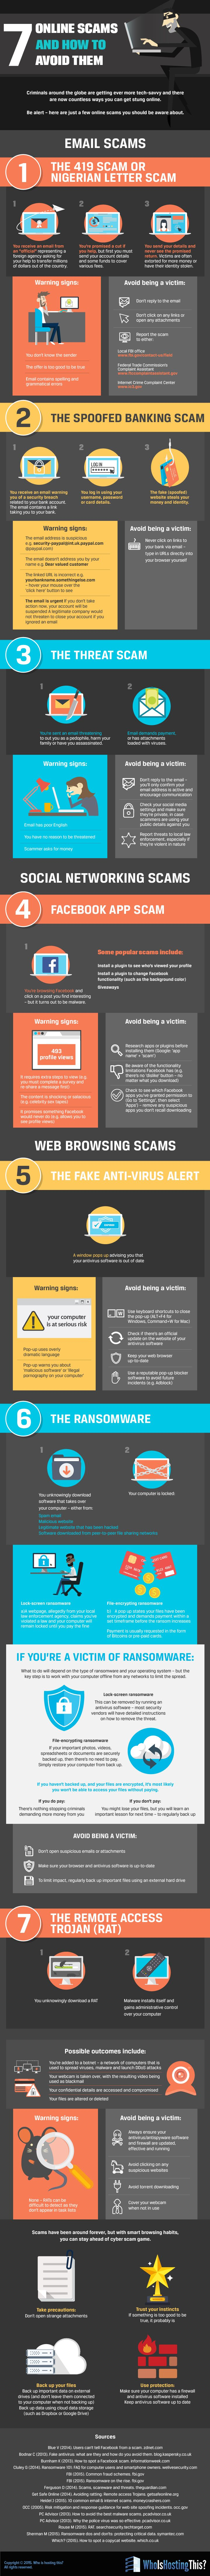 #infographic: 7 Online Scams And How To Avoid Them